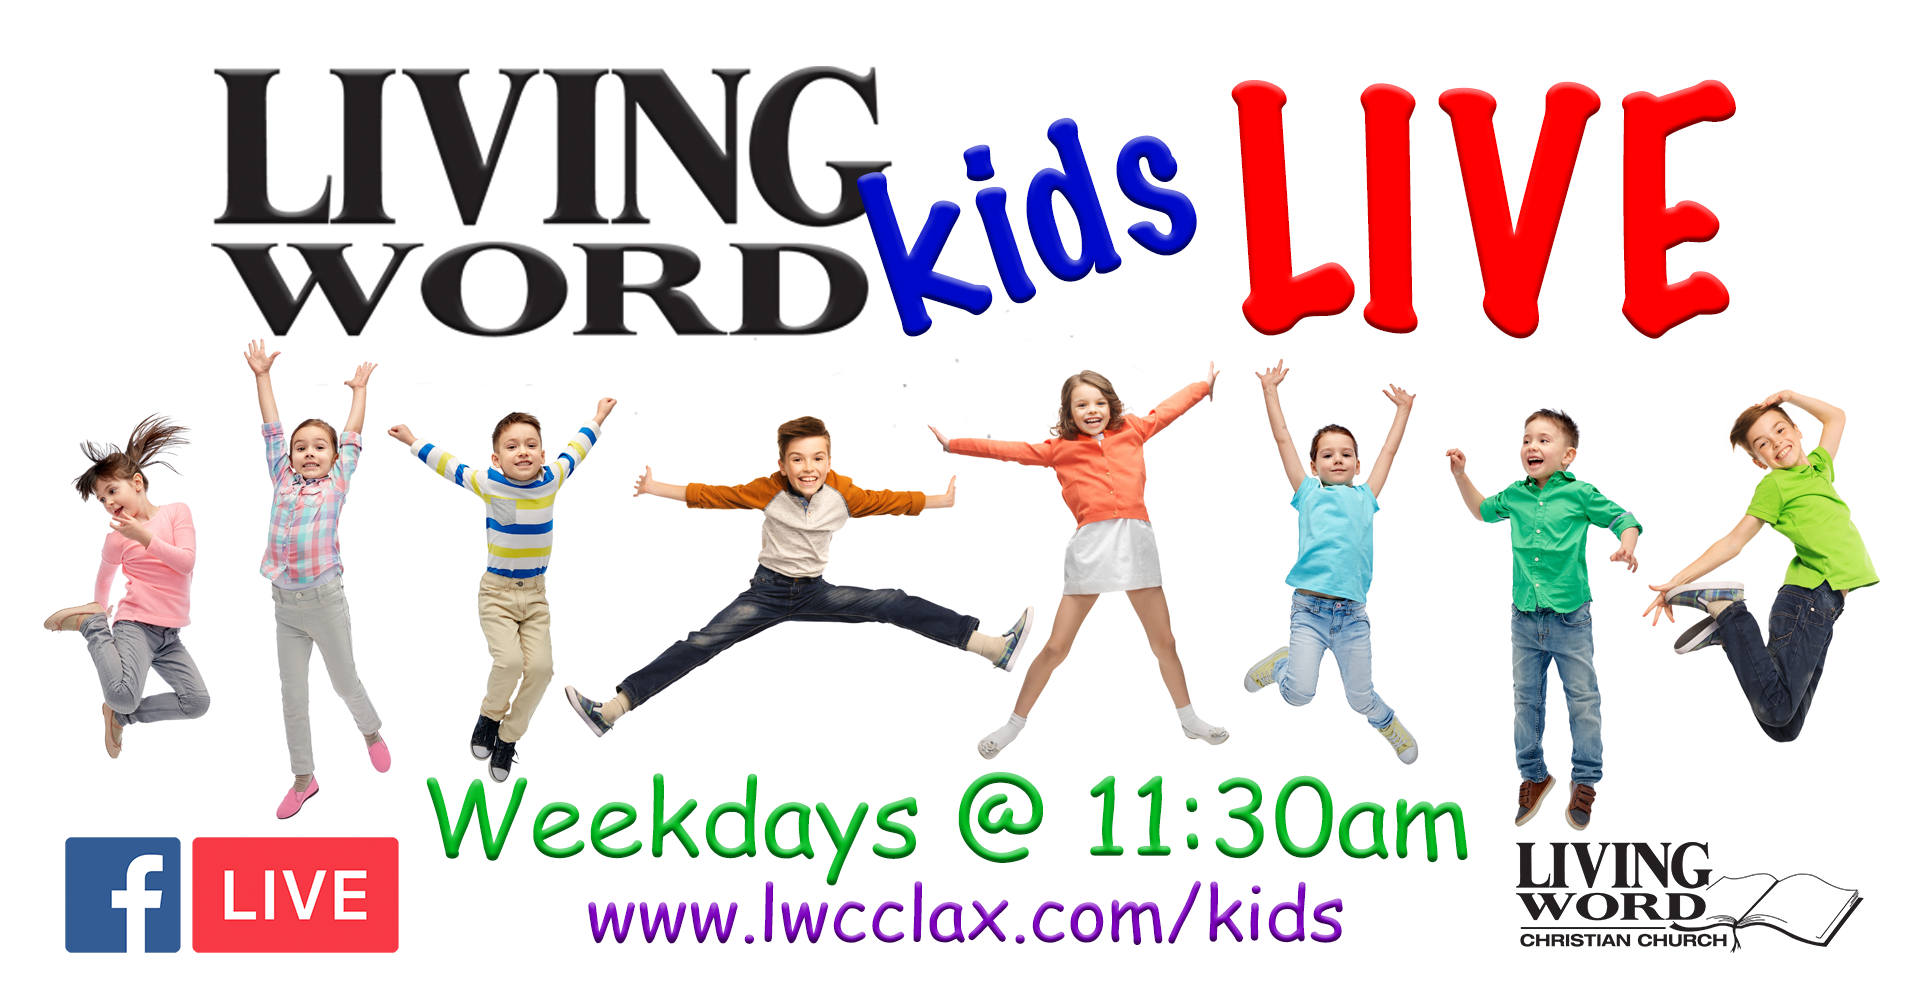 Living Word Kids LIVE